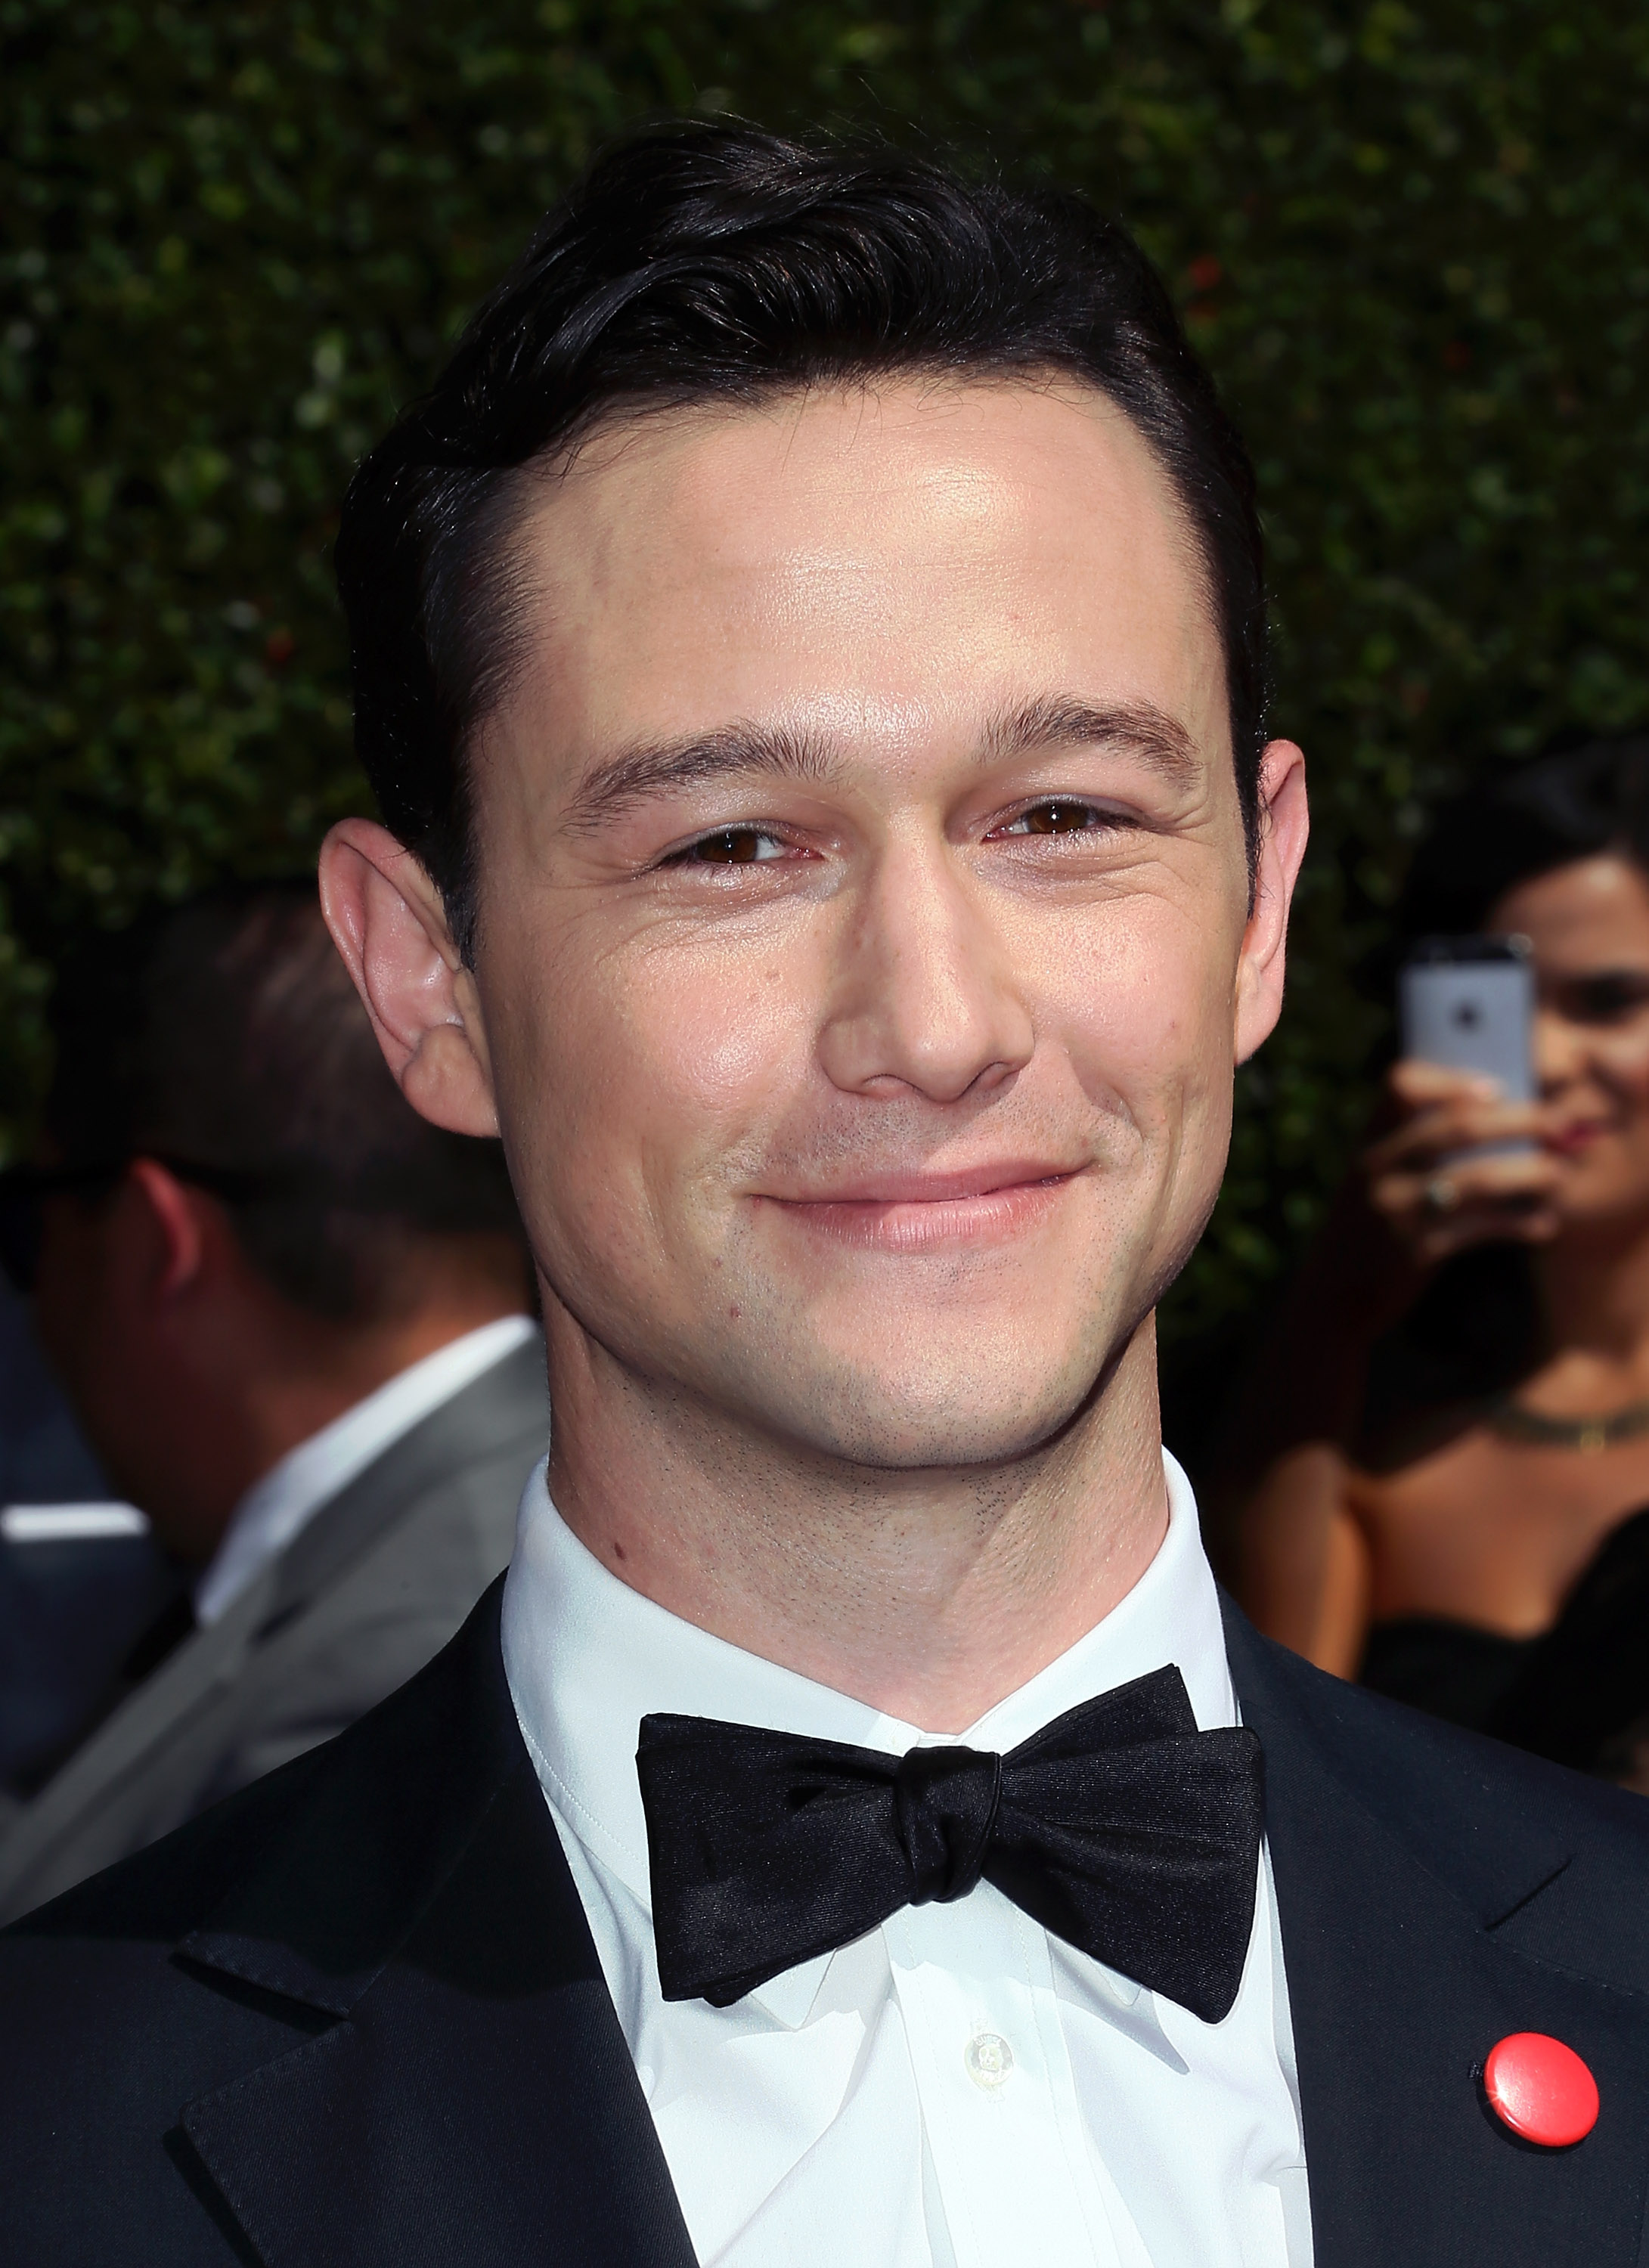 Joseph Gordon-Levitt attends the 2014 Creative Arts Emmy Awards at the Nokia Theatre L.A. Live on Aug. 16, 2014 in Los Angeles.